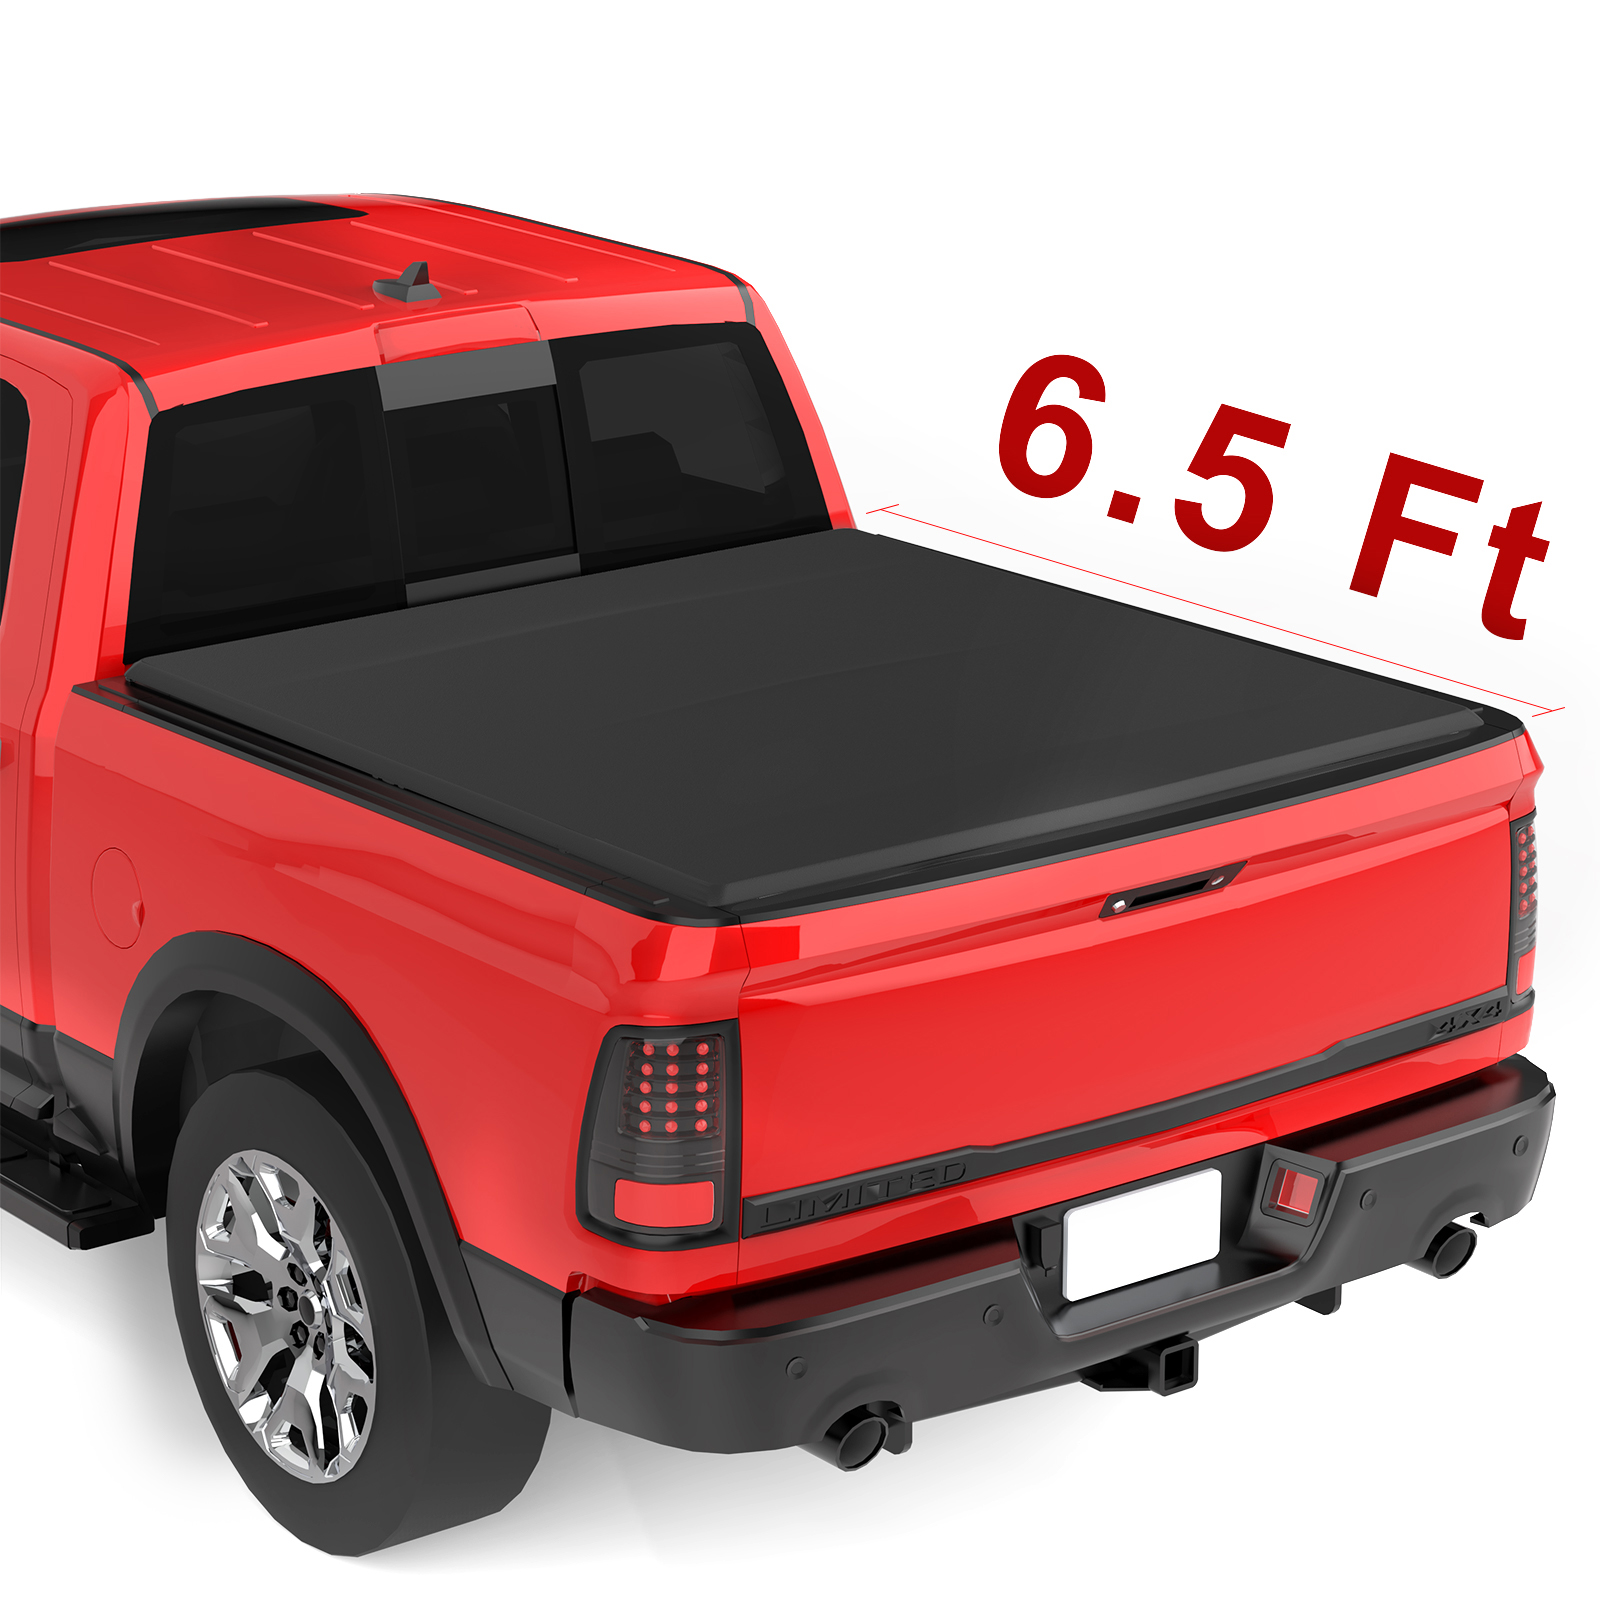 Upgraded Soft Tri Fold Truck Bed Tonneau Cover On Top Compatible For 2002 2019 Dodge Ram 1500 Only 2019 Classic 2003 2018 Dodge Ram 2500 3500 With 6 4ft Bed Fleetside Without Ram Box Walmart Com Walmart Com